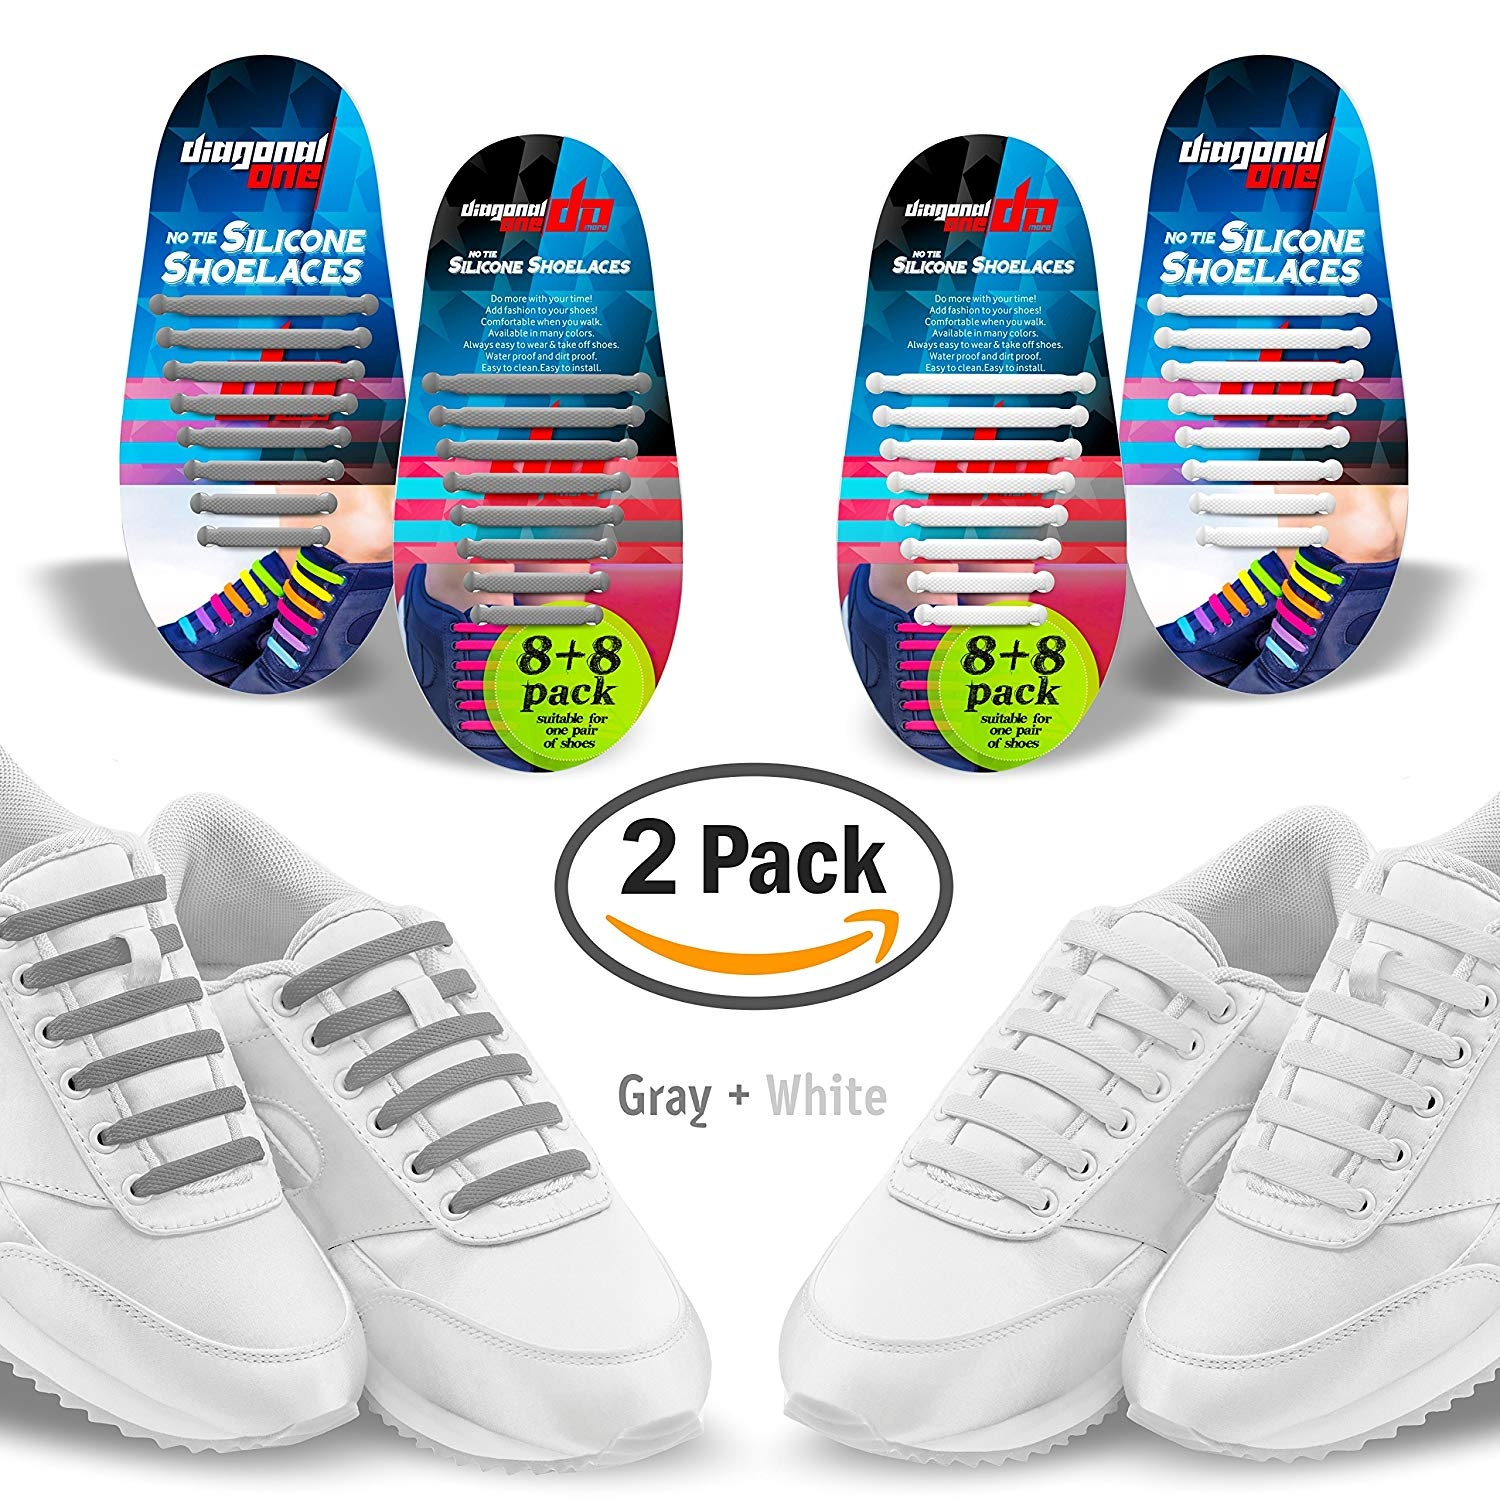 421fcd79f5 Diagonal One No Tie Shoelaces – 2 Pack. Slip On Tieless Elastic ...